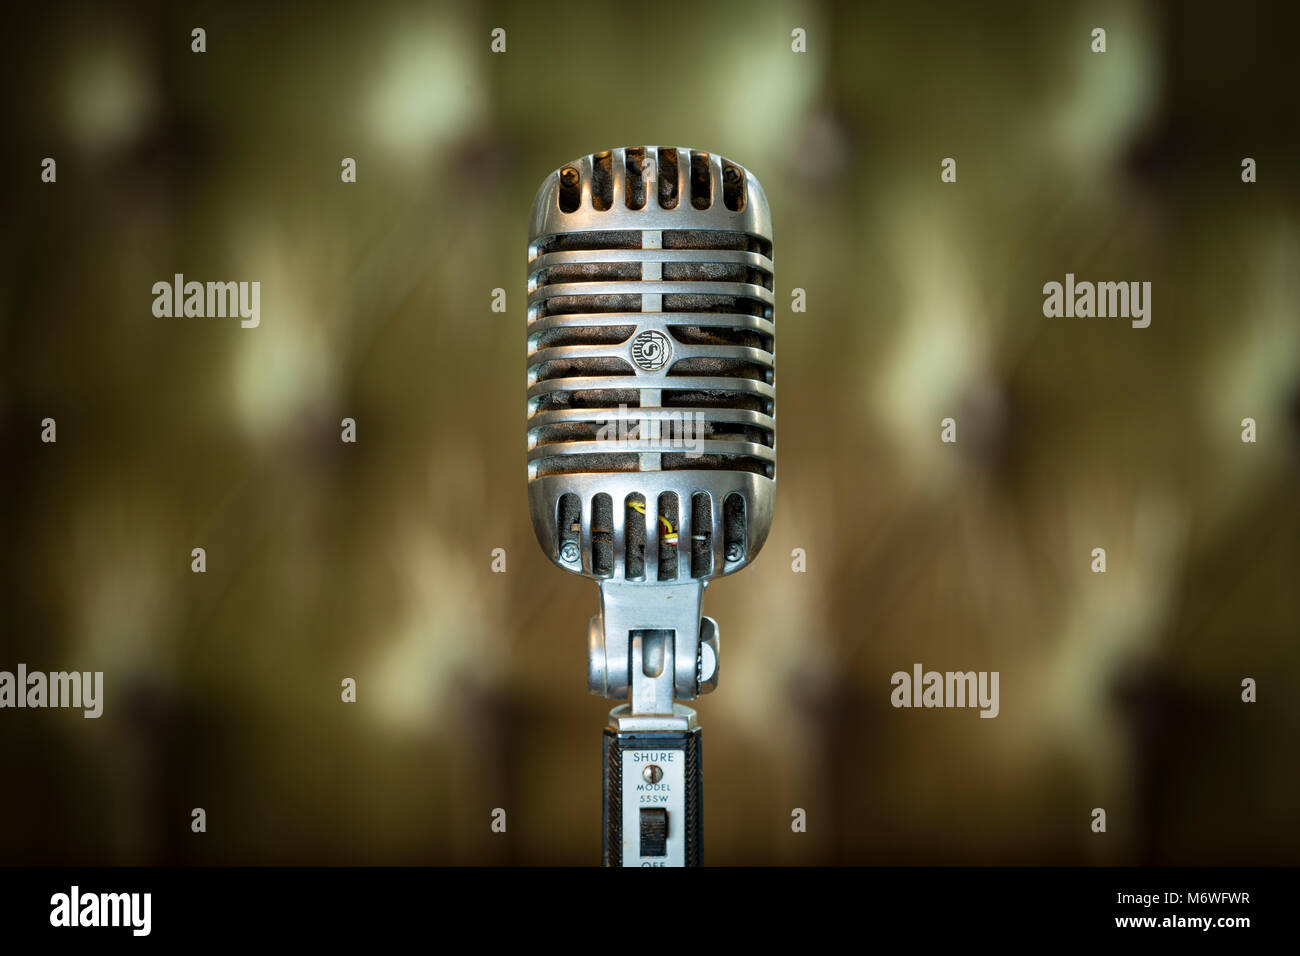 Vintage Elvis Presley Shure 555W Unidyne Dynamic Microphone from the 1960's. - Stock Image